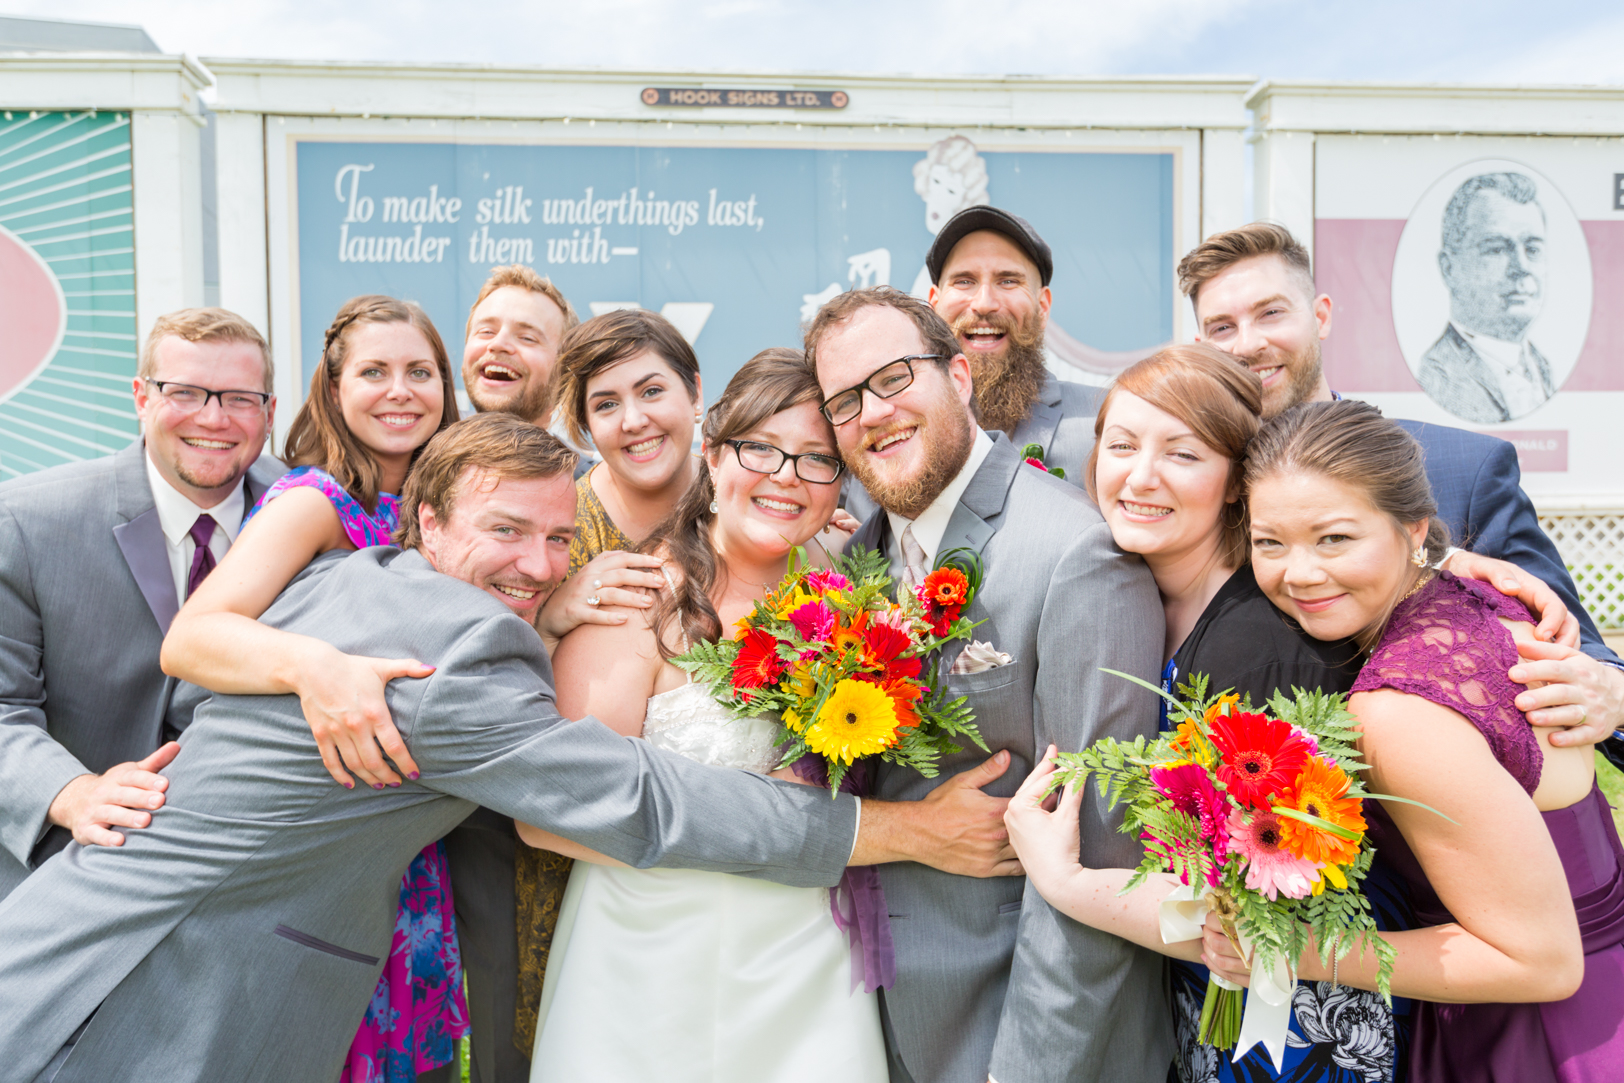 Wedding Group Photo Ideas